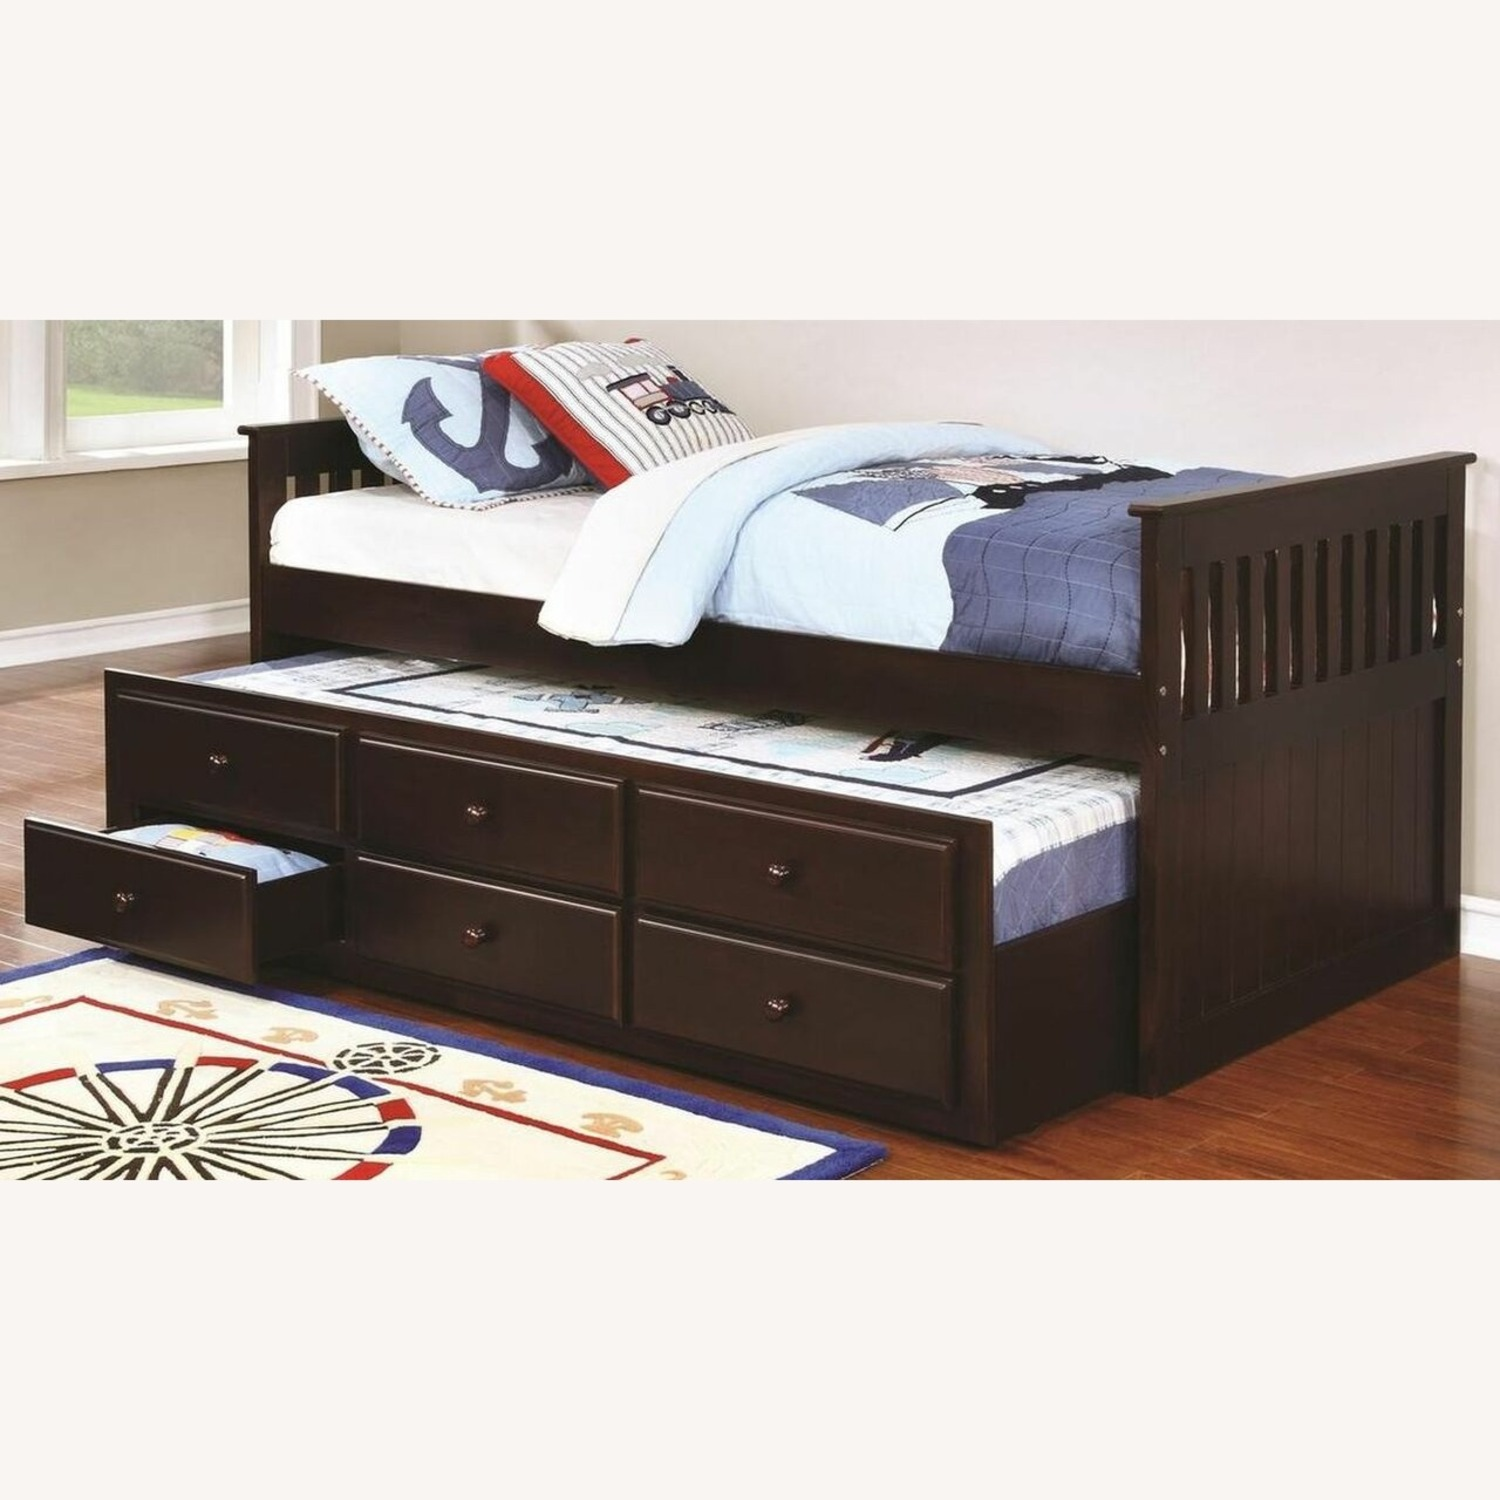 Twin Bed W/ Storage Trundle In Cappuccino Finish - image-1